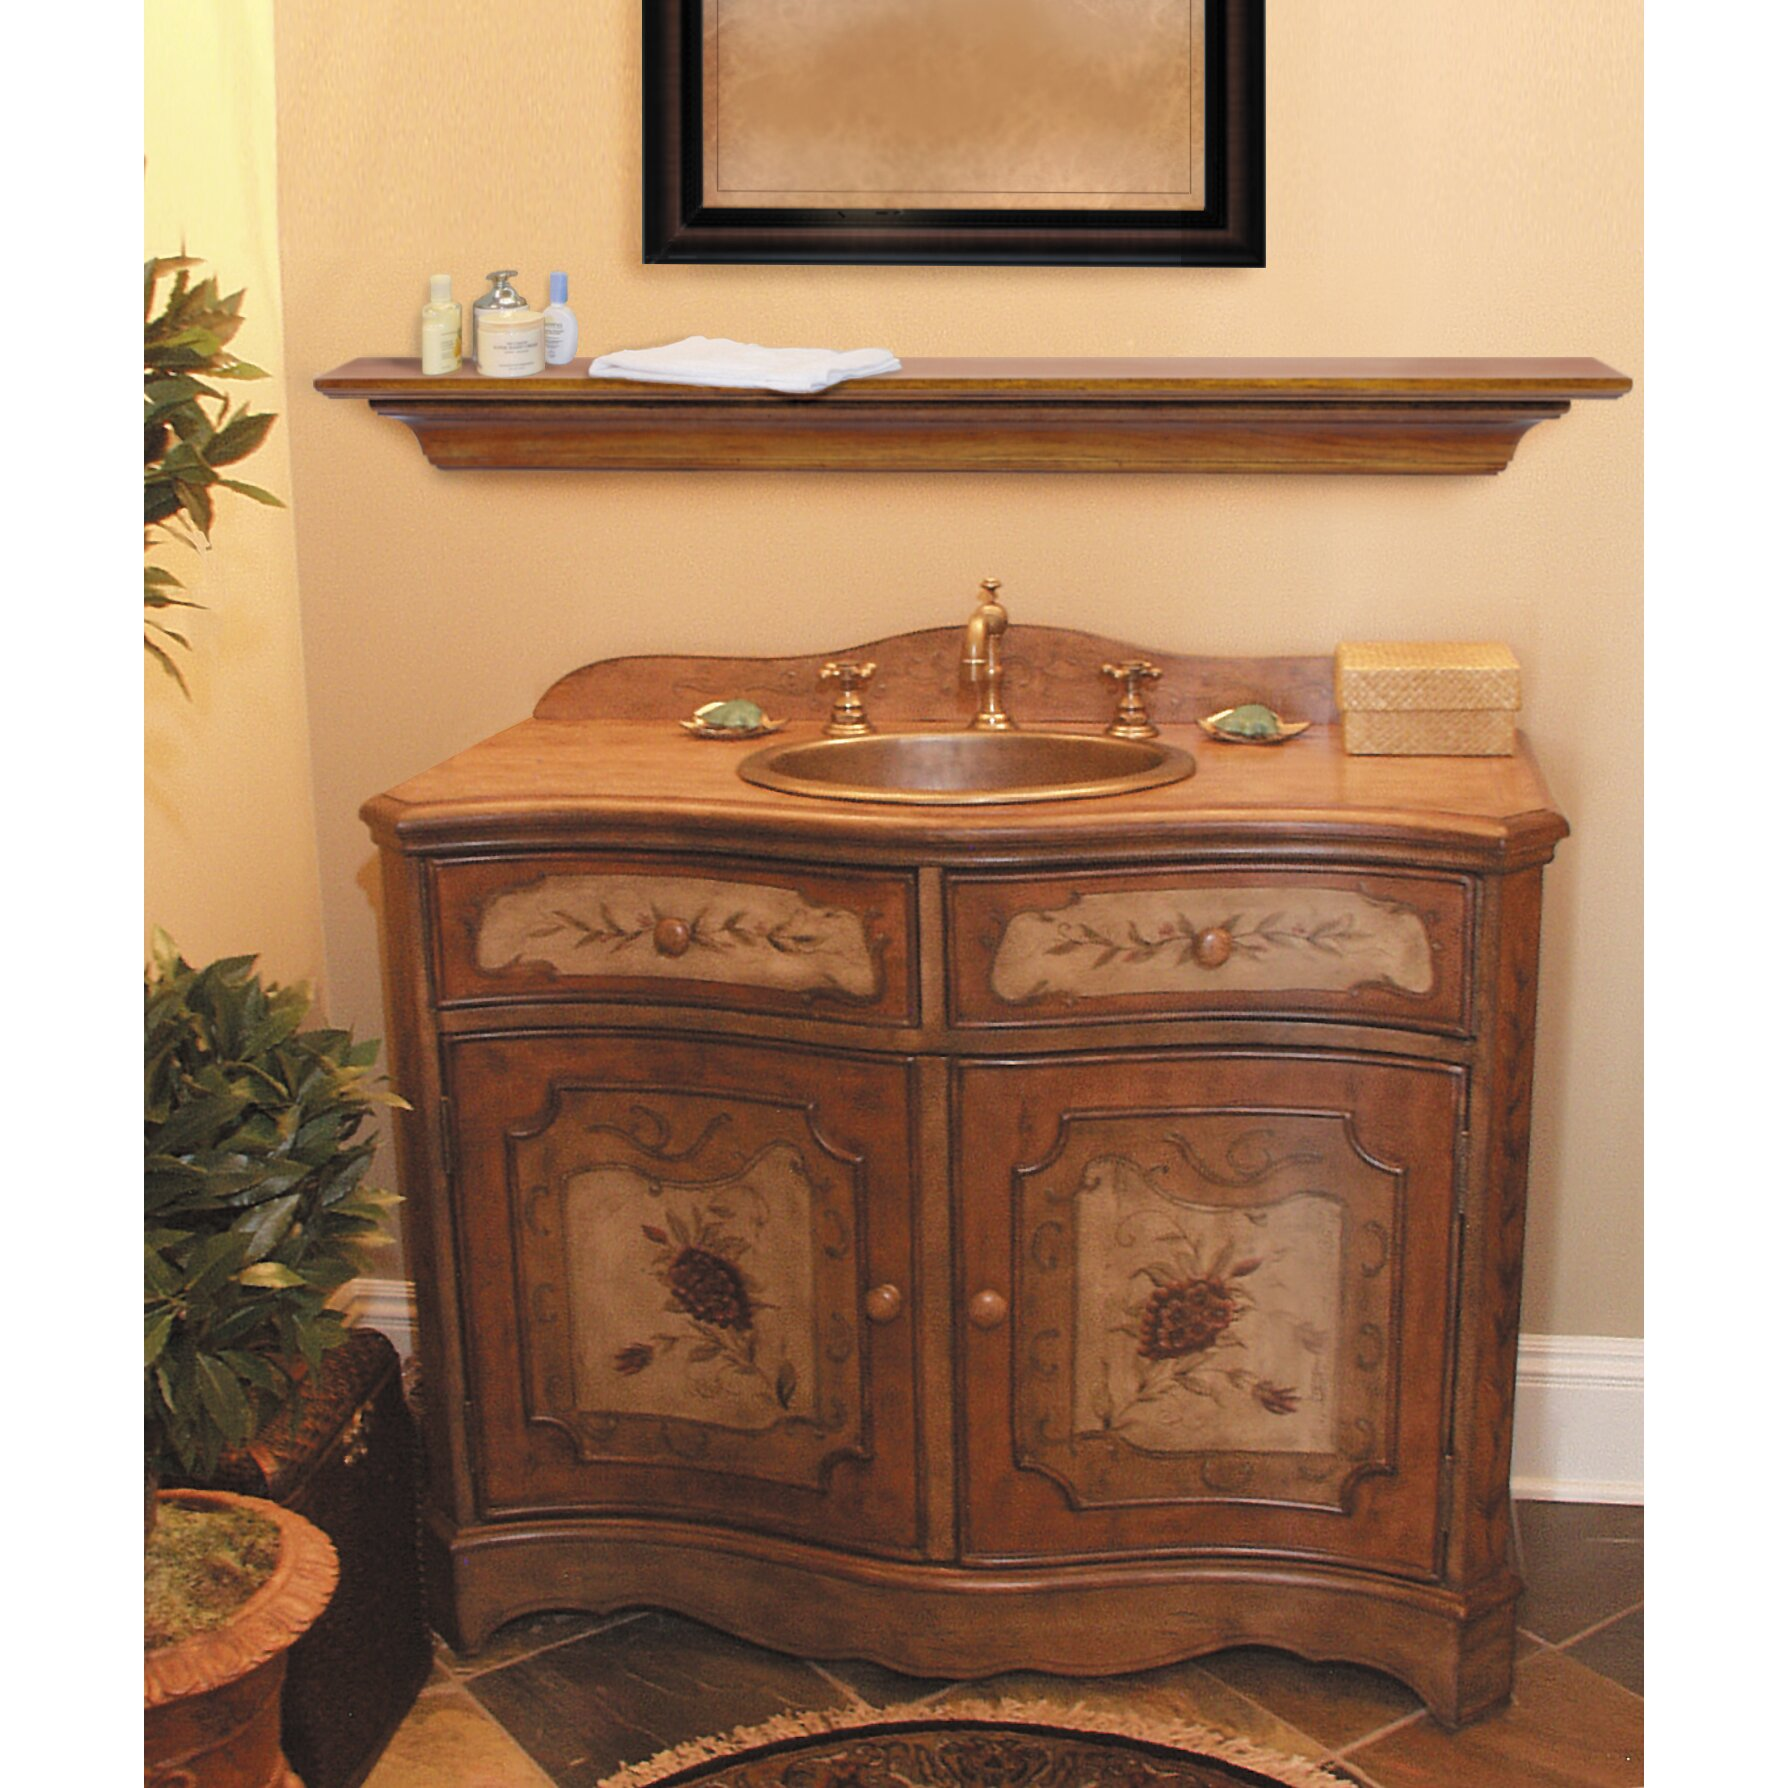 48 homestead fireplace mantel shelf wayfair. Black Bedroom Furniture Sets. Home Design Ideas